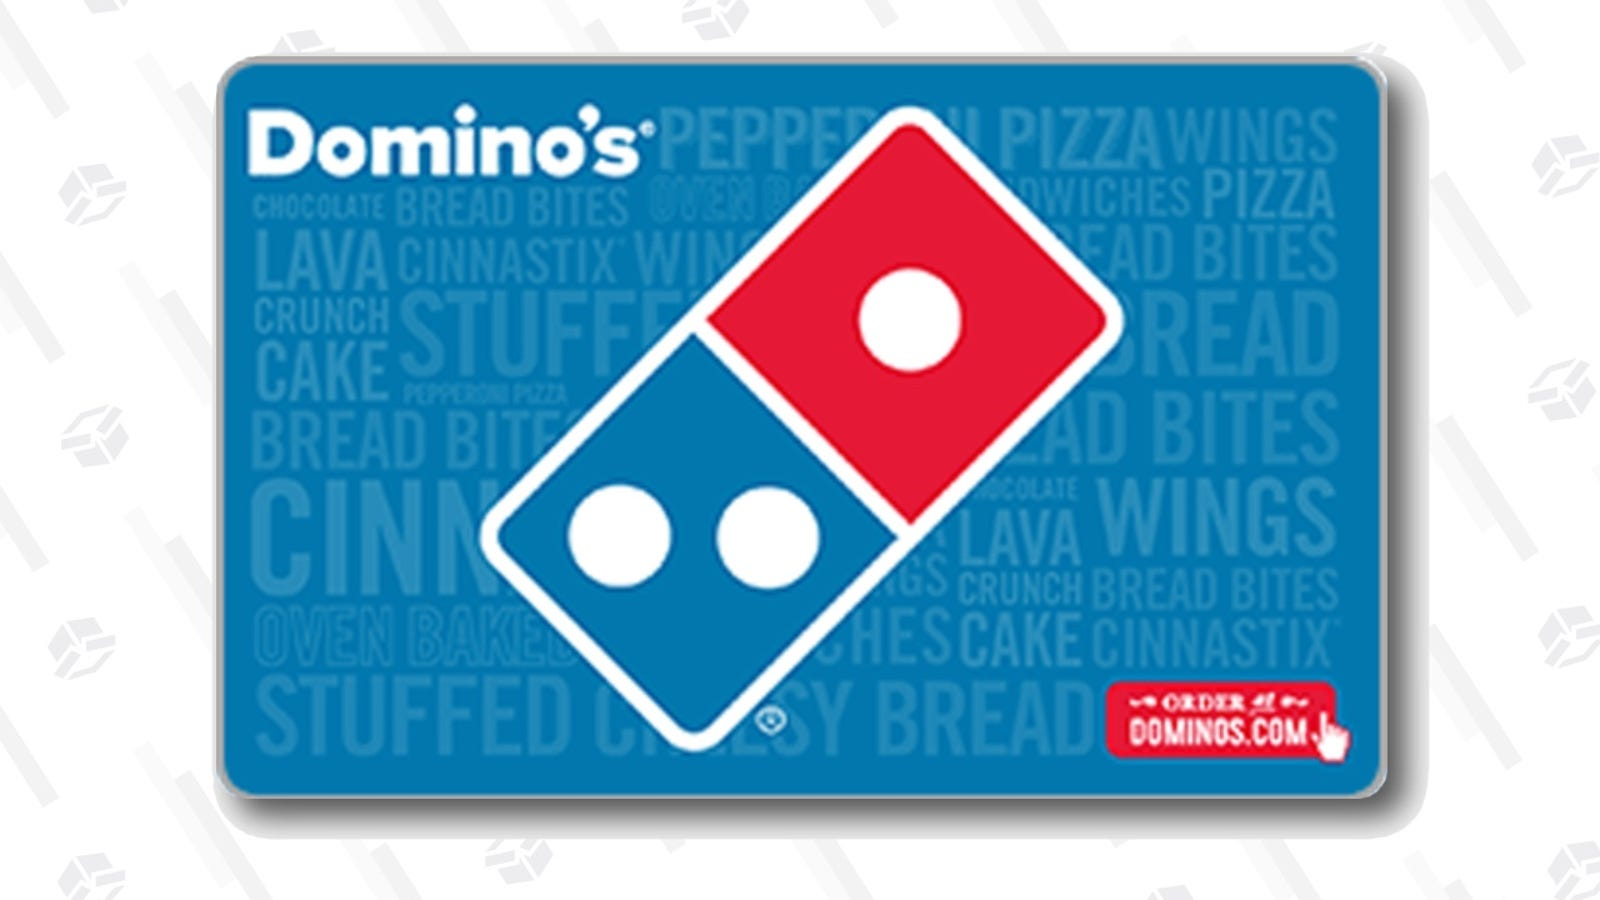 download a $30 domino's gift card for $25